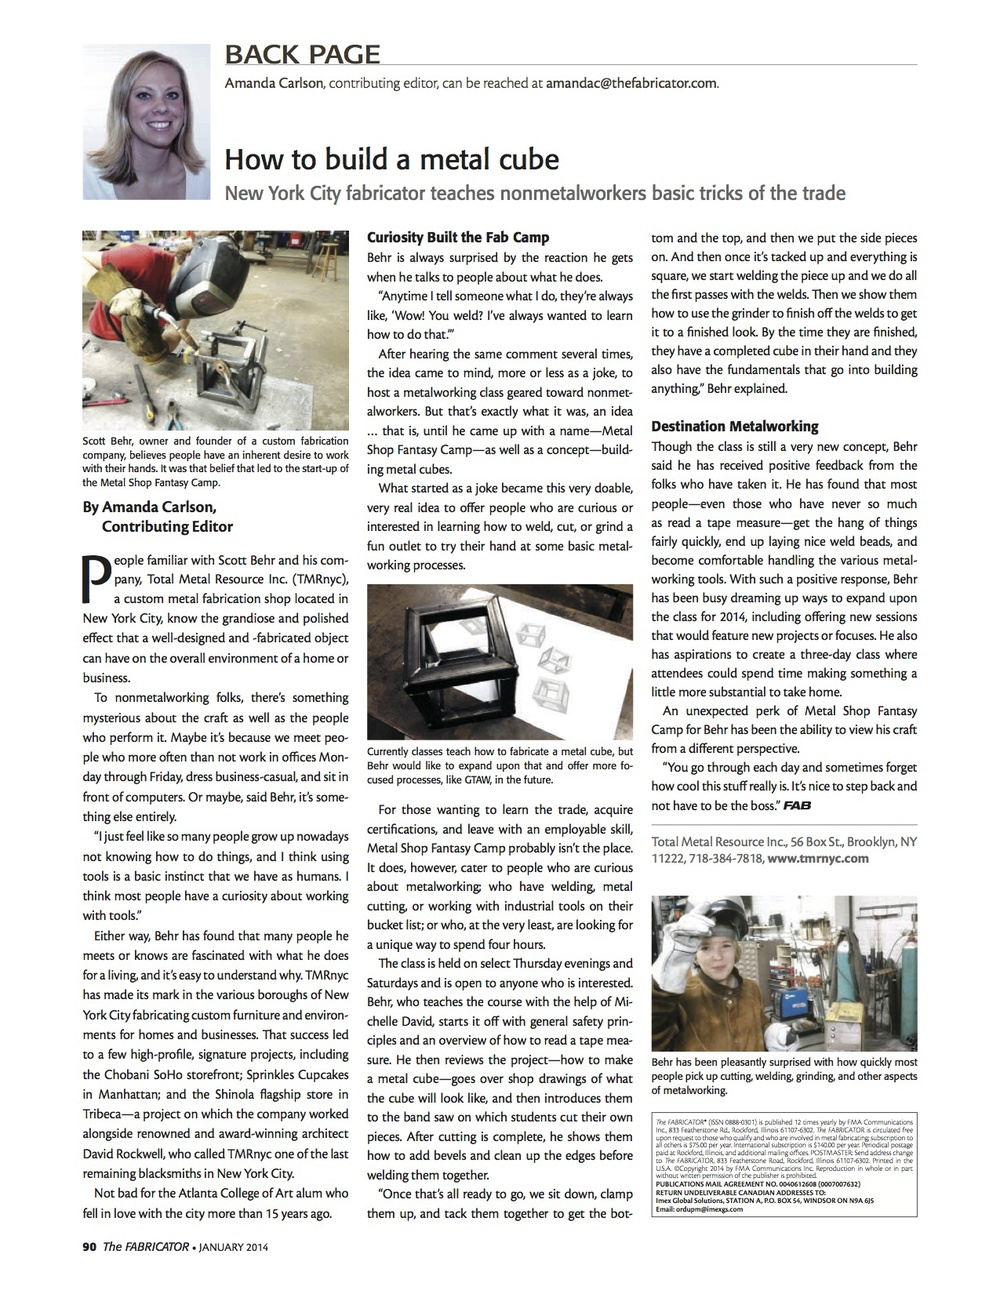 Metal Shop Fantasy Camp featured on the Back Page of   The Fabricator  .